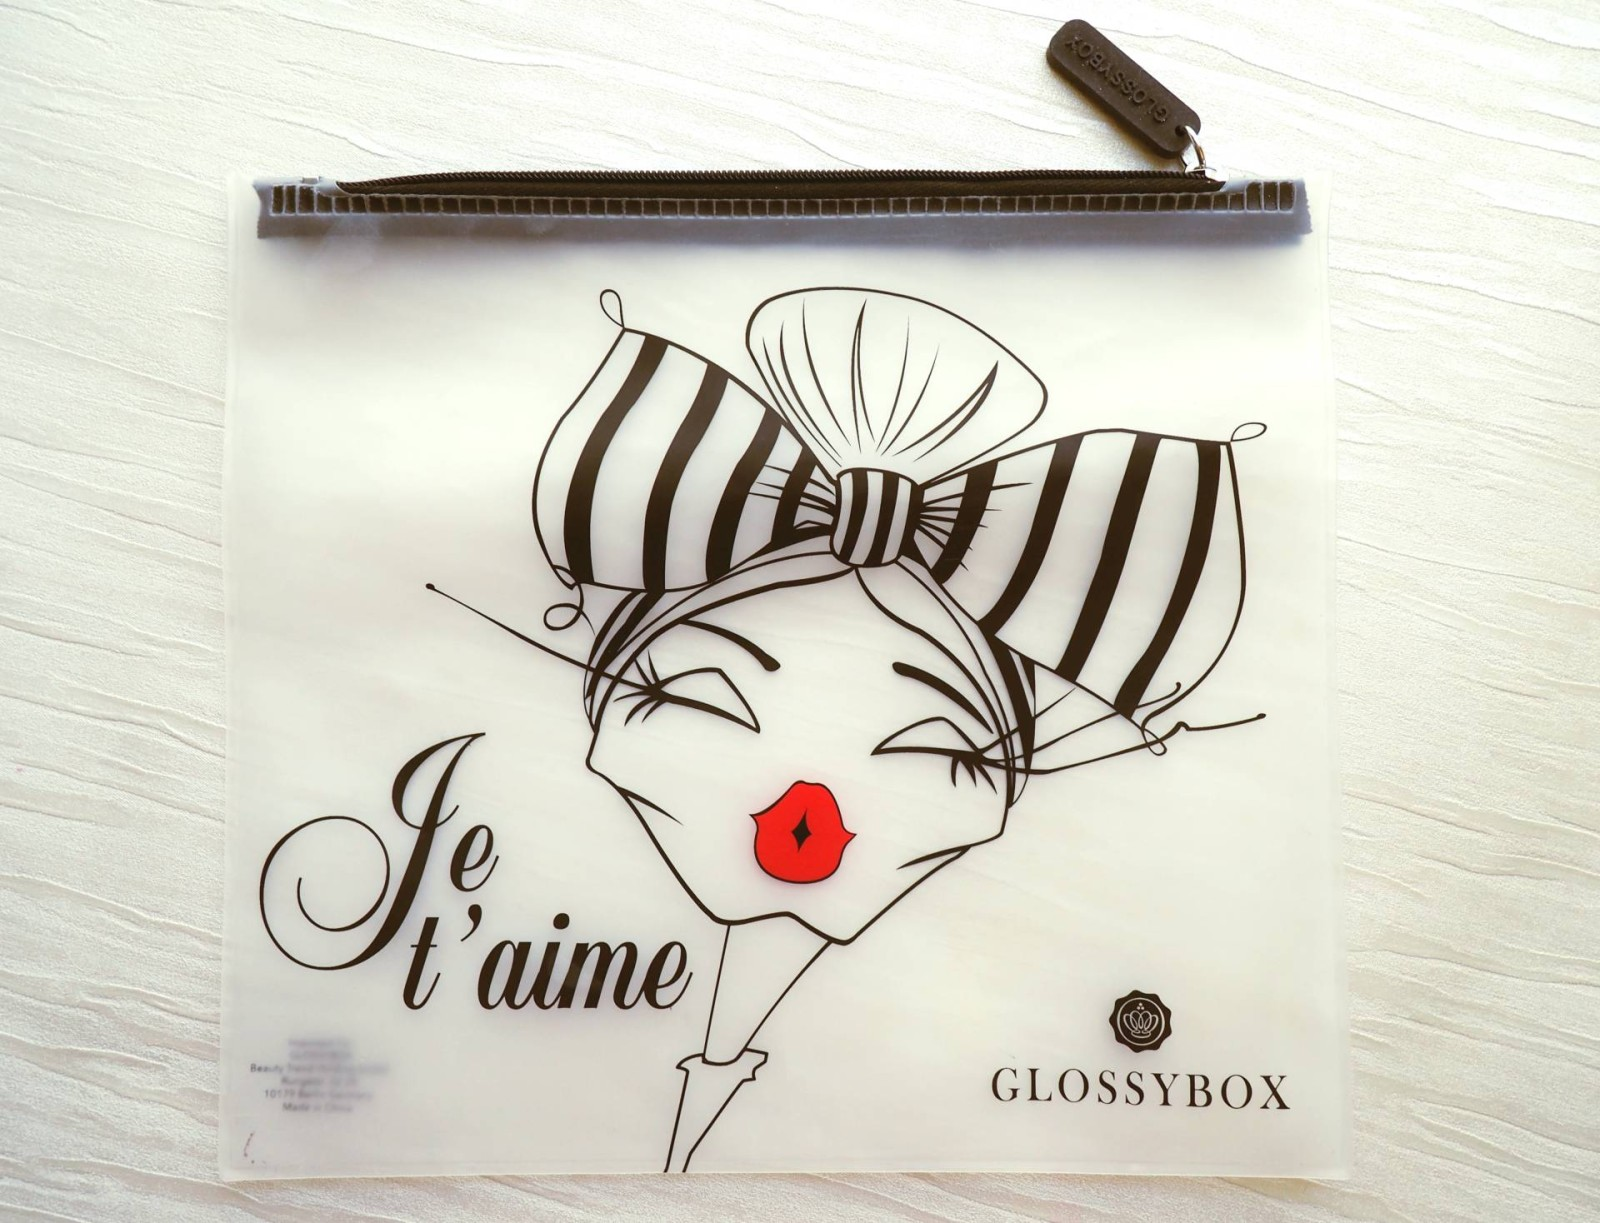 Glossybox Year in Review - House of Paper Doll